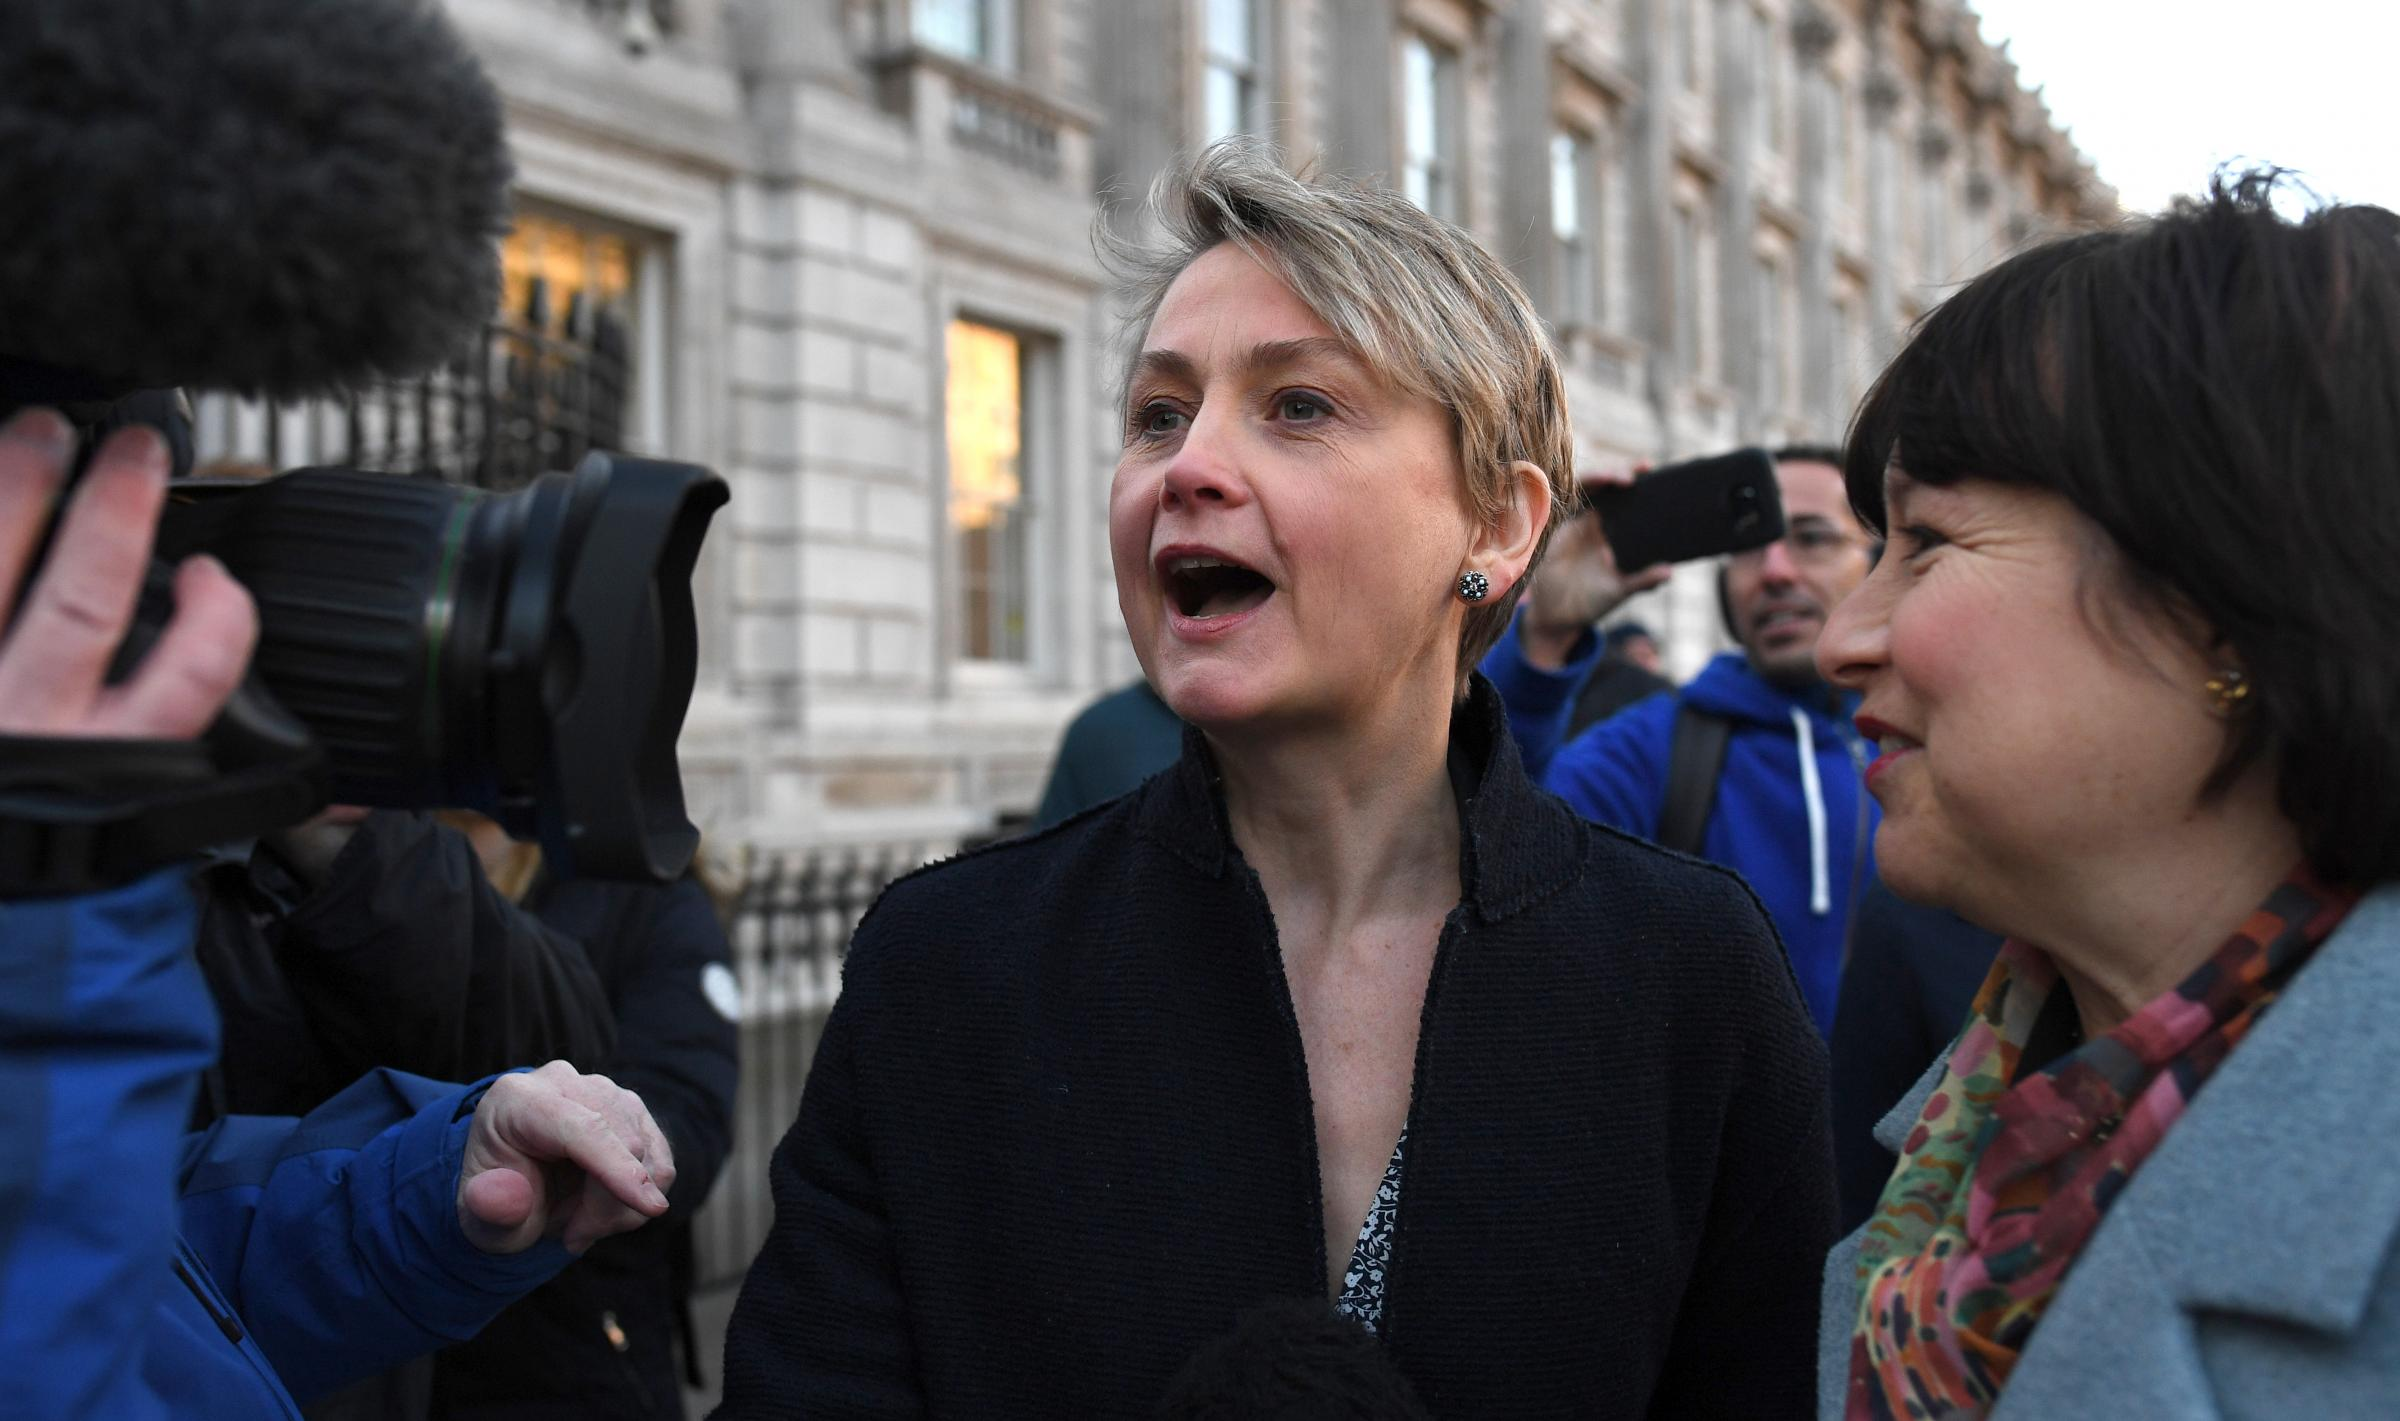 Labour's Yvette Cooper is working with Tory ex-minister Nick Boles in attempting to block a no-deal Brexit.